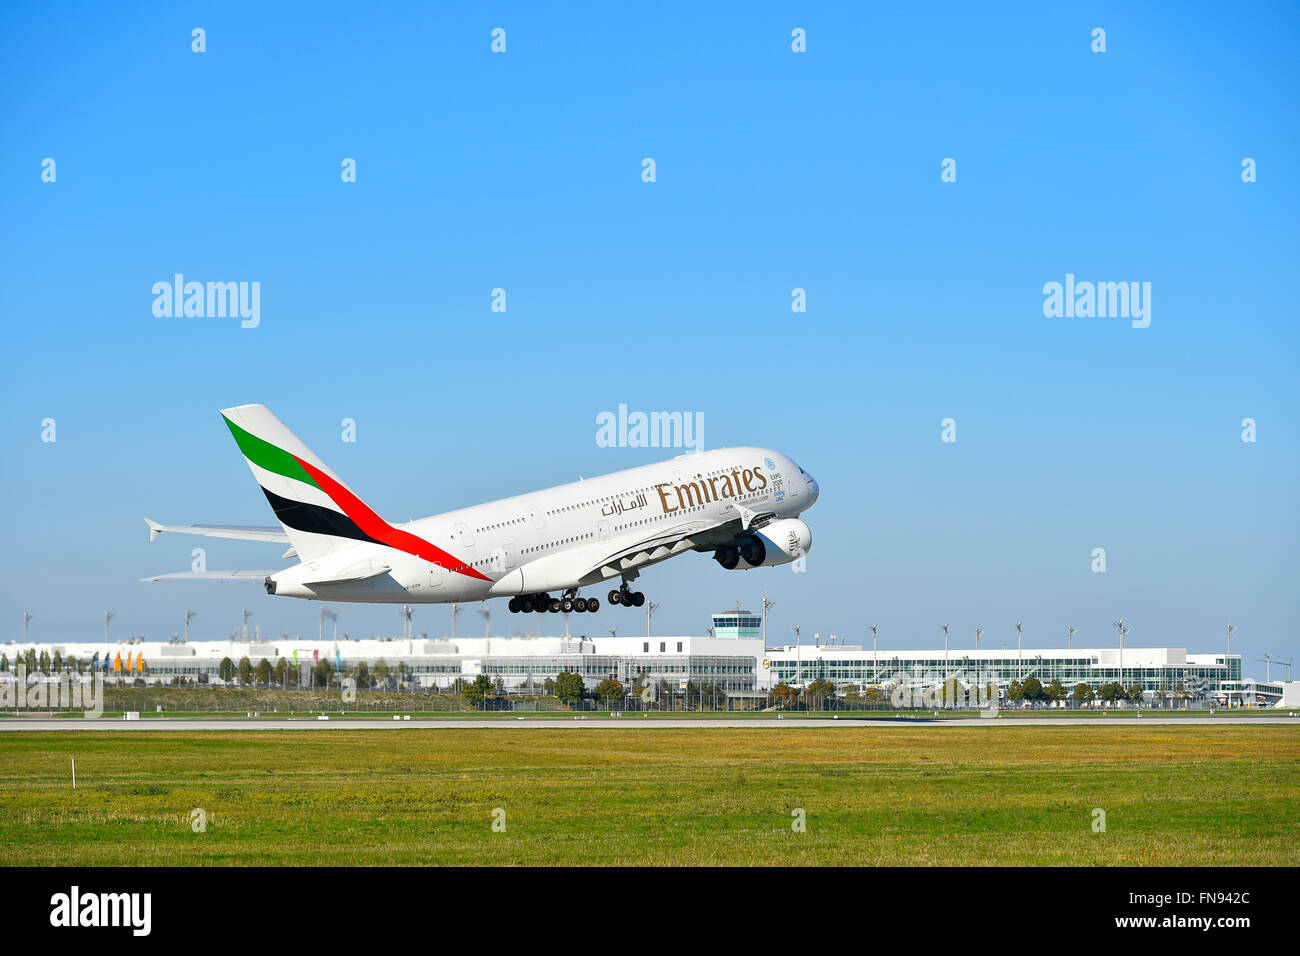 airbus, a 380, A380-800, A 380 - 800, 380, 800, emirates, take of, off, start, MUC, EDDM, Airport, Munich, Erding, - Stock Image